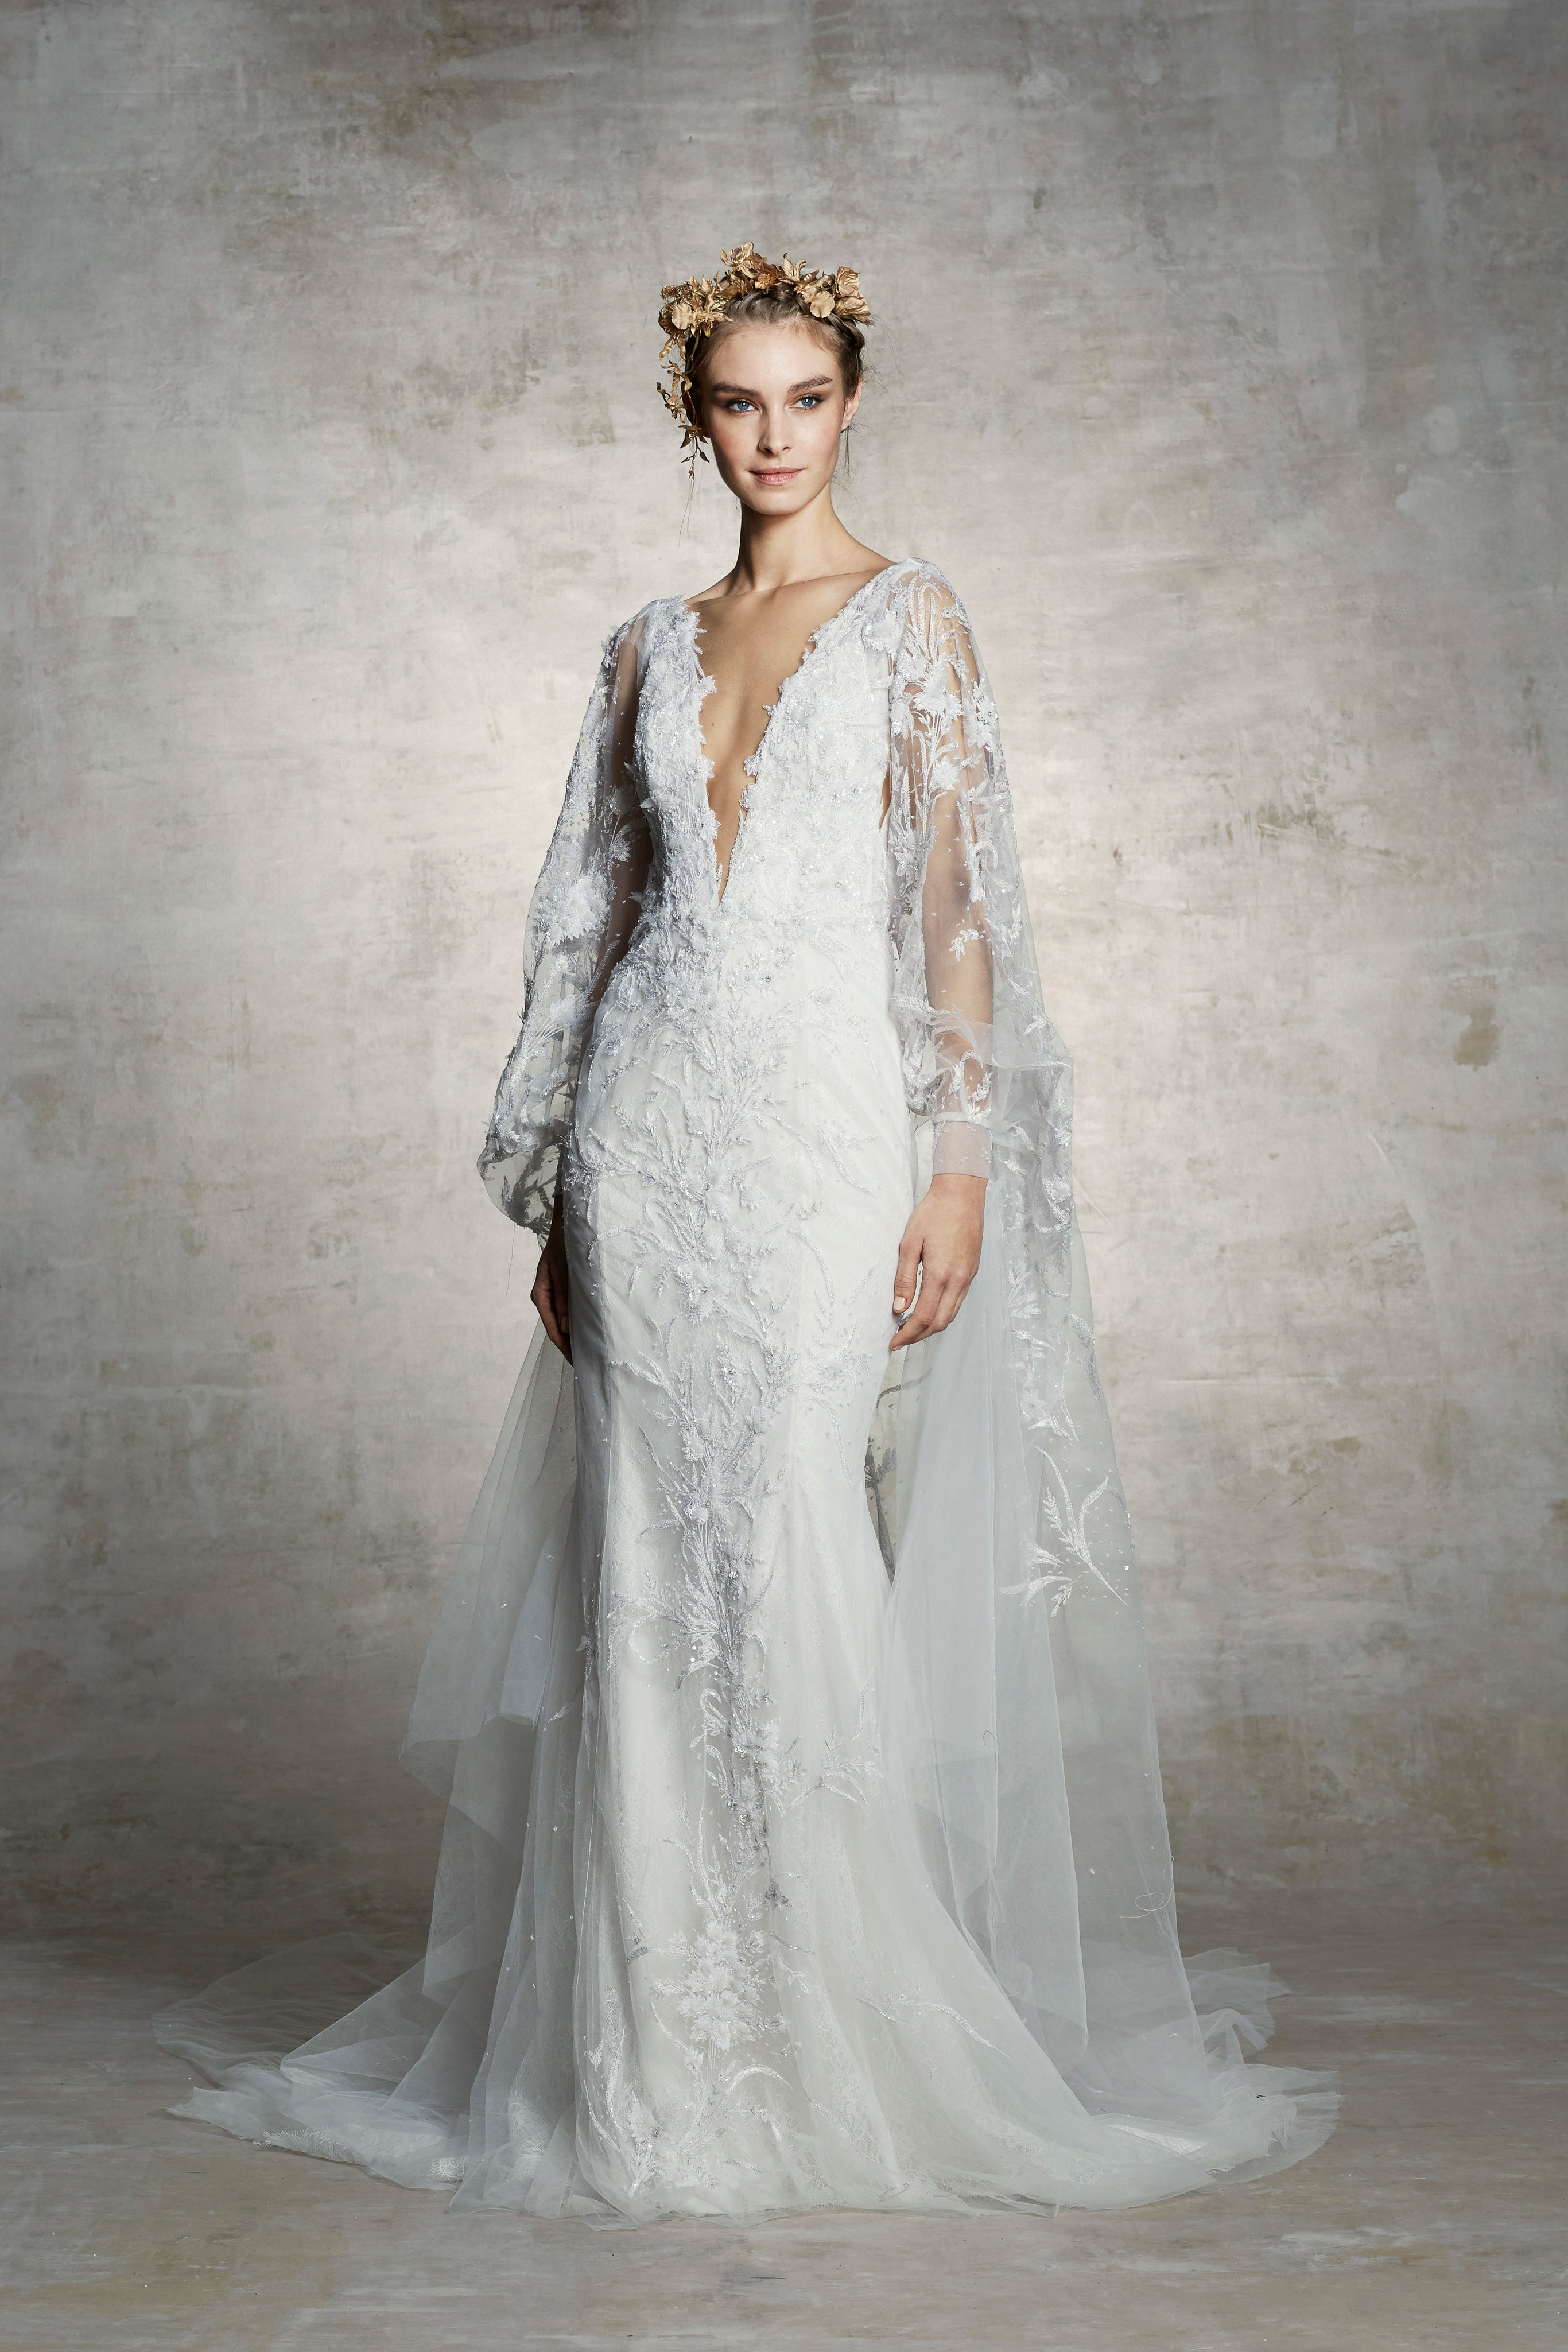 37 Best Wedding Gowns From Bridal Fashion Week 2019 Style To The